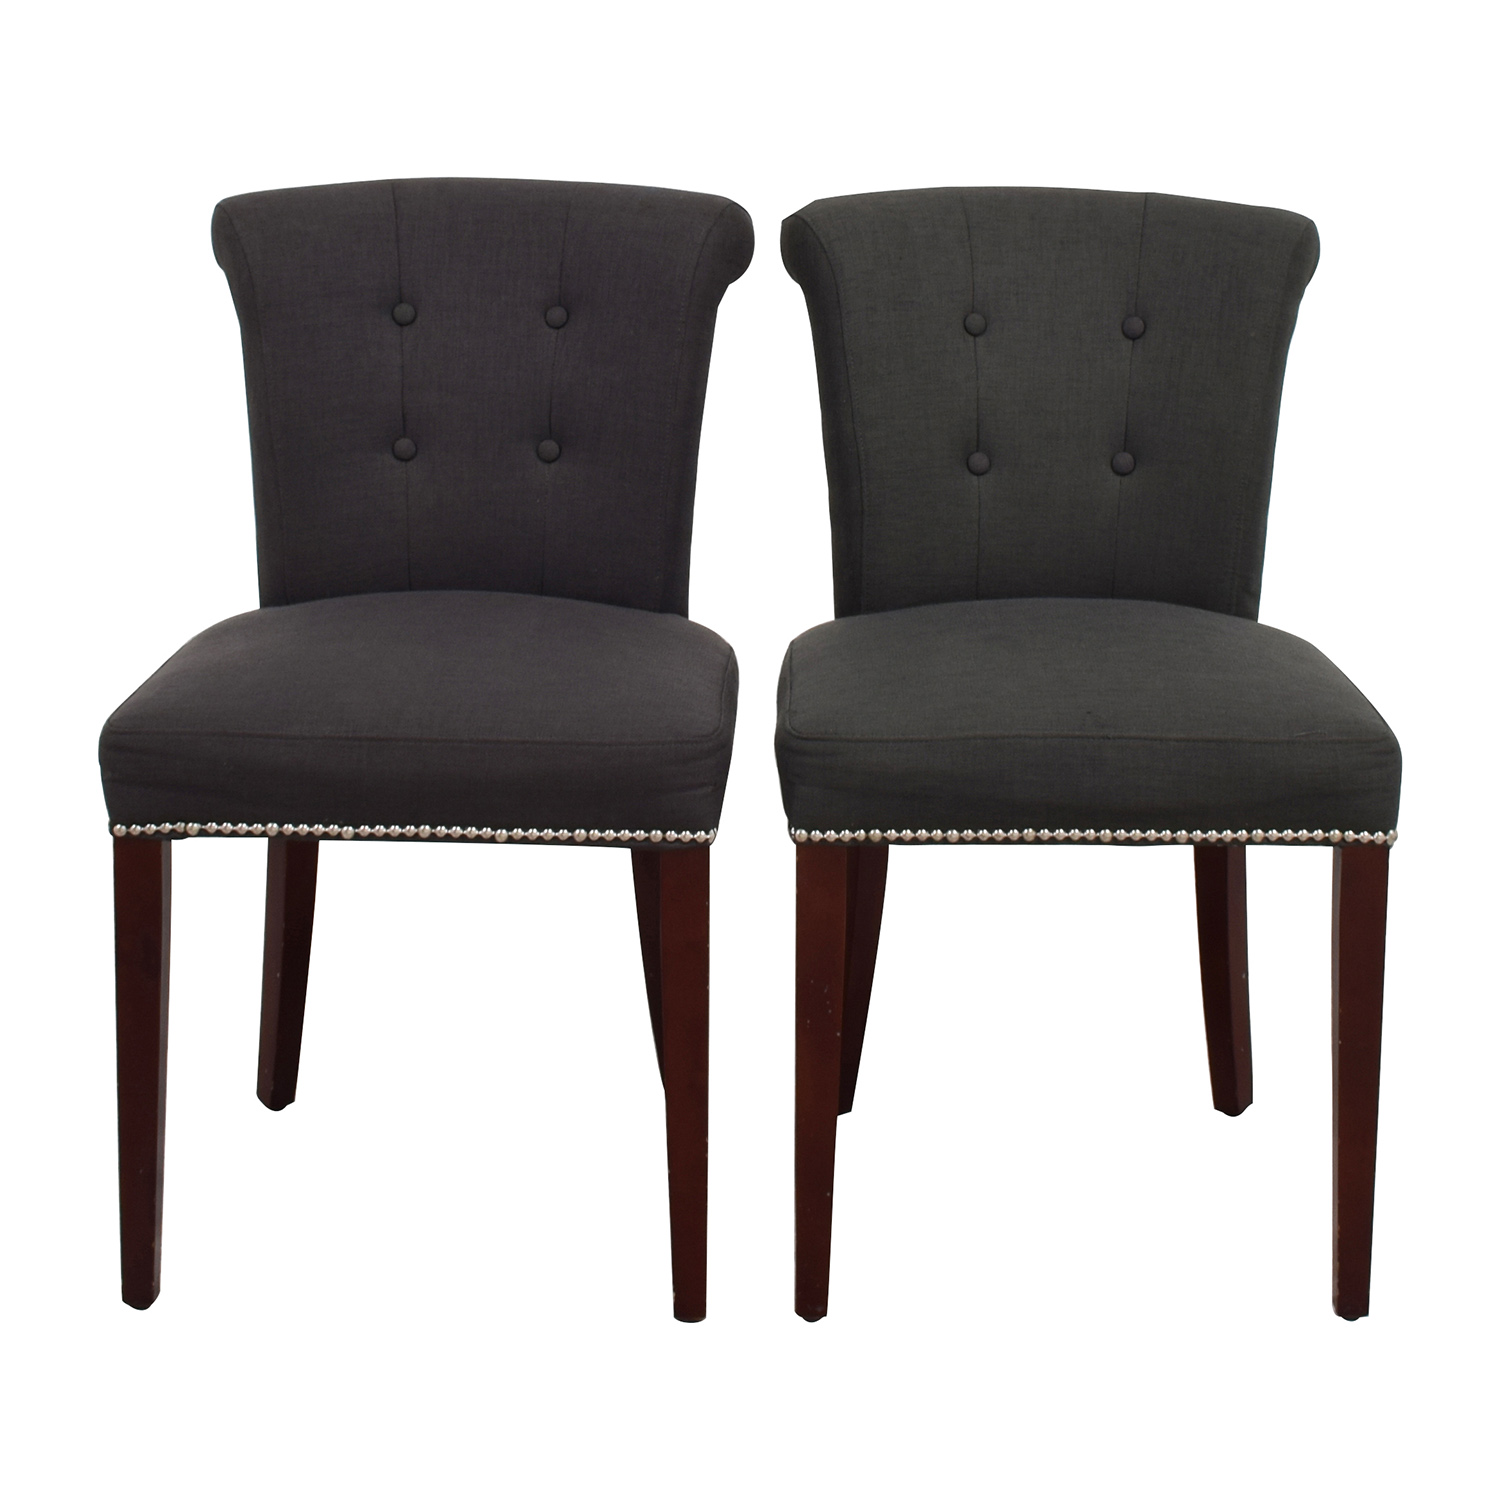 safavieh sinclair ring side chair dining covers walmart horchow accent chairs on a budget